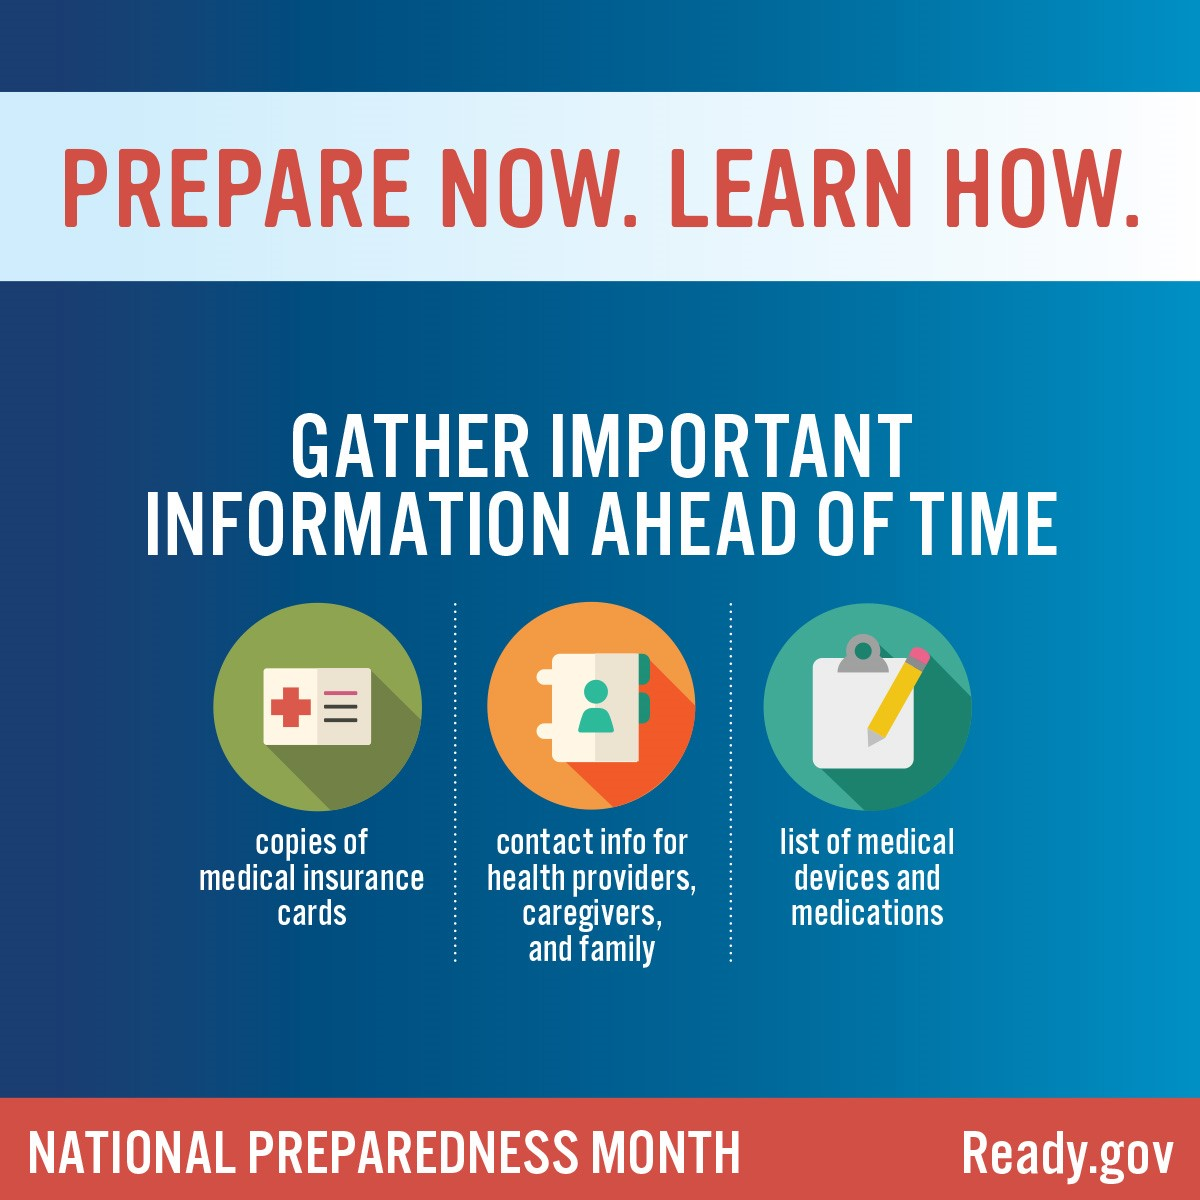 Gather important information ahead of time: copies of medical insurance cards; contact info for health providers, caregivers, and family; and list of medical devices and medications